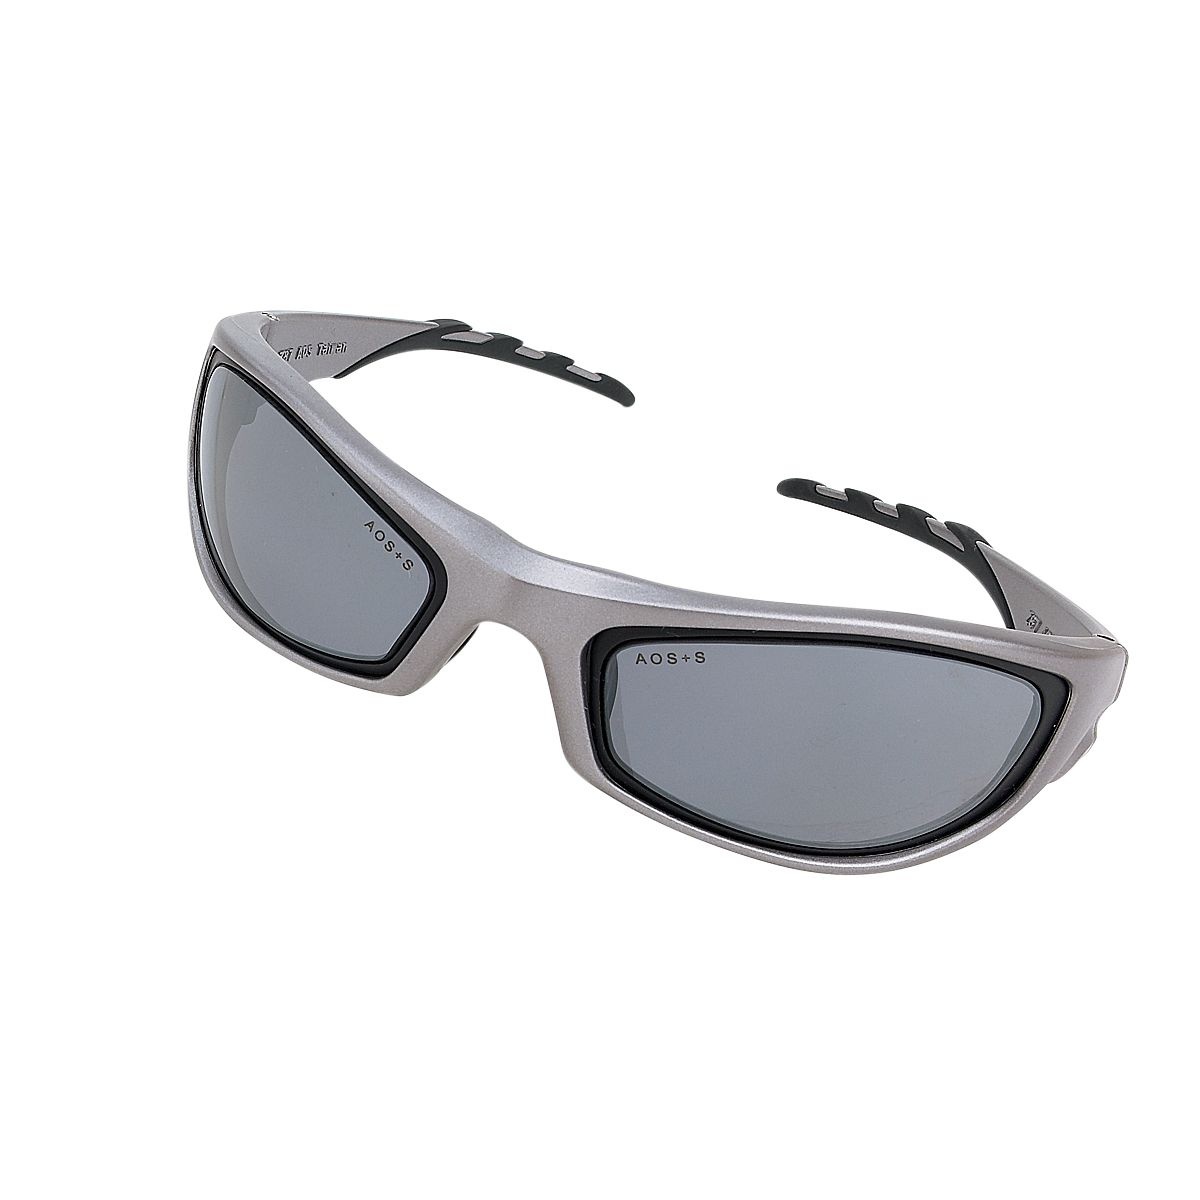 Force 3 Safety Glasses with Interchangeable Lenses                                                                               at mygofer.com